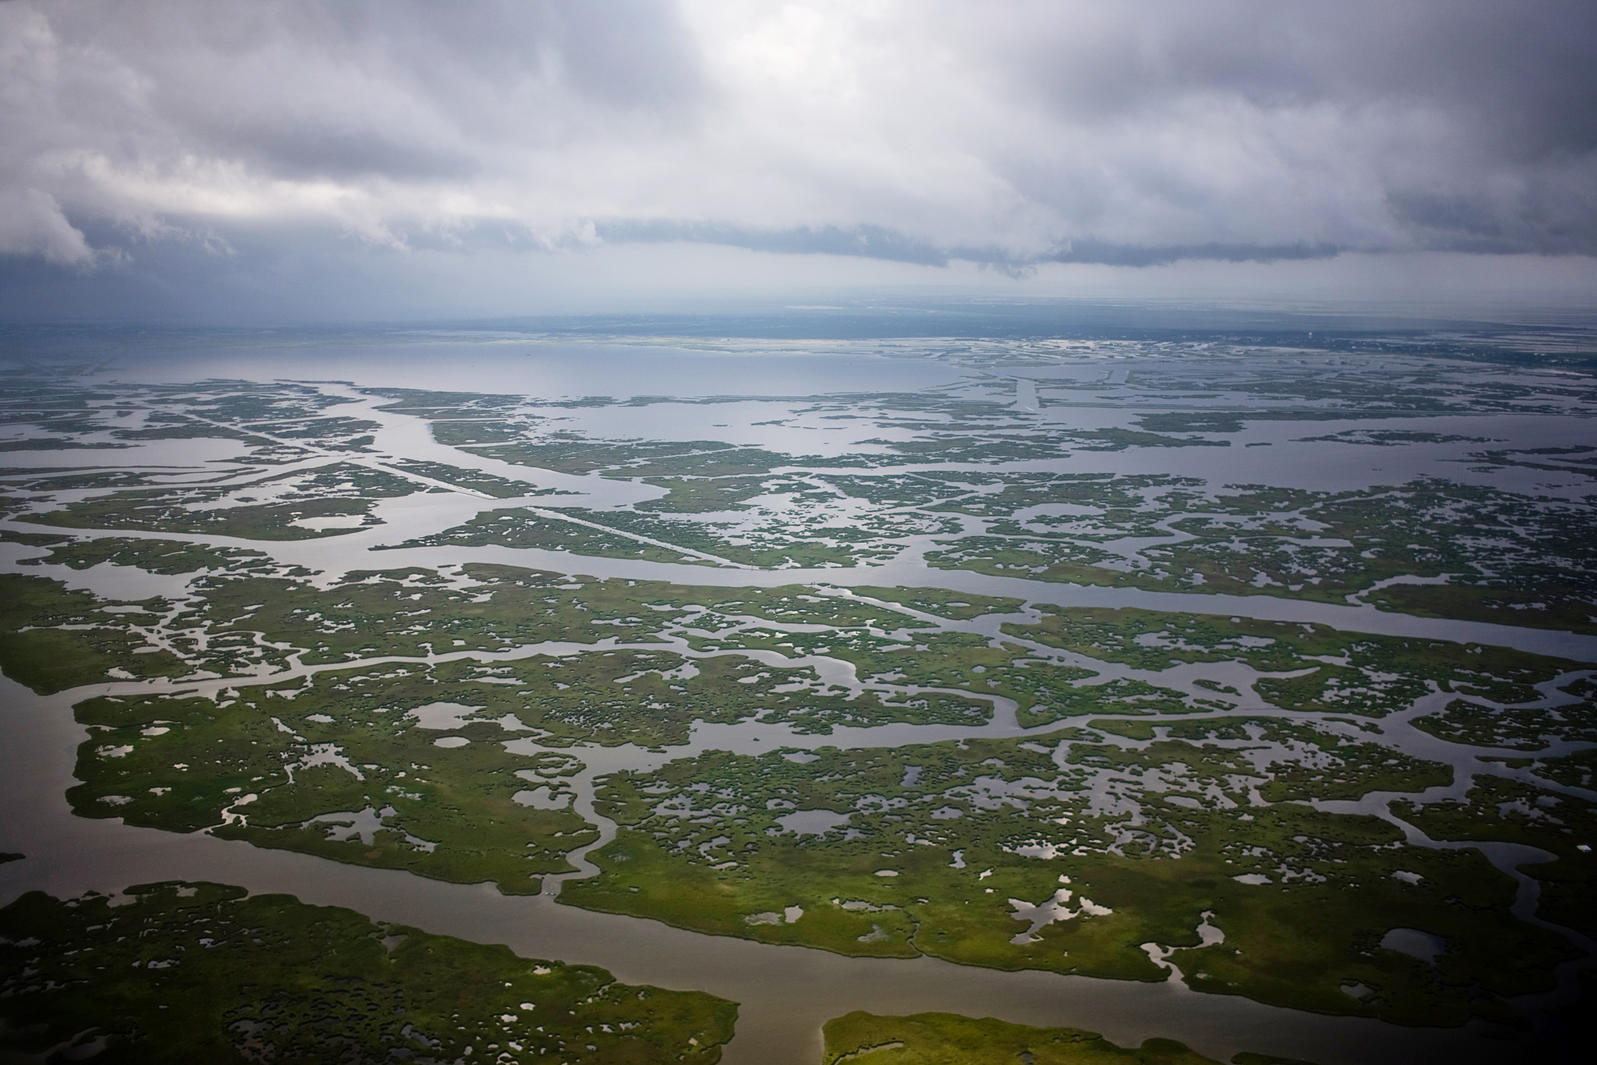 The cost of industrial development is clear in these degraded wetlands near Grand Isle, Louisiana. Matthew B. Slaby